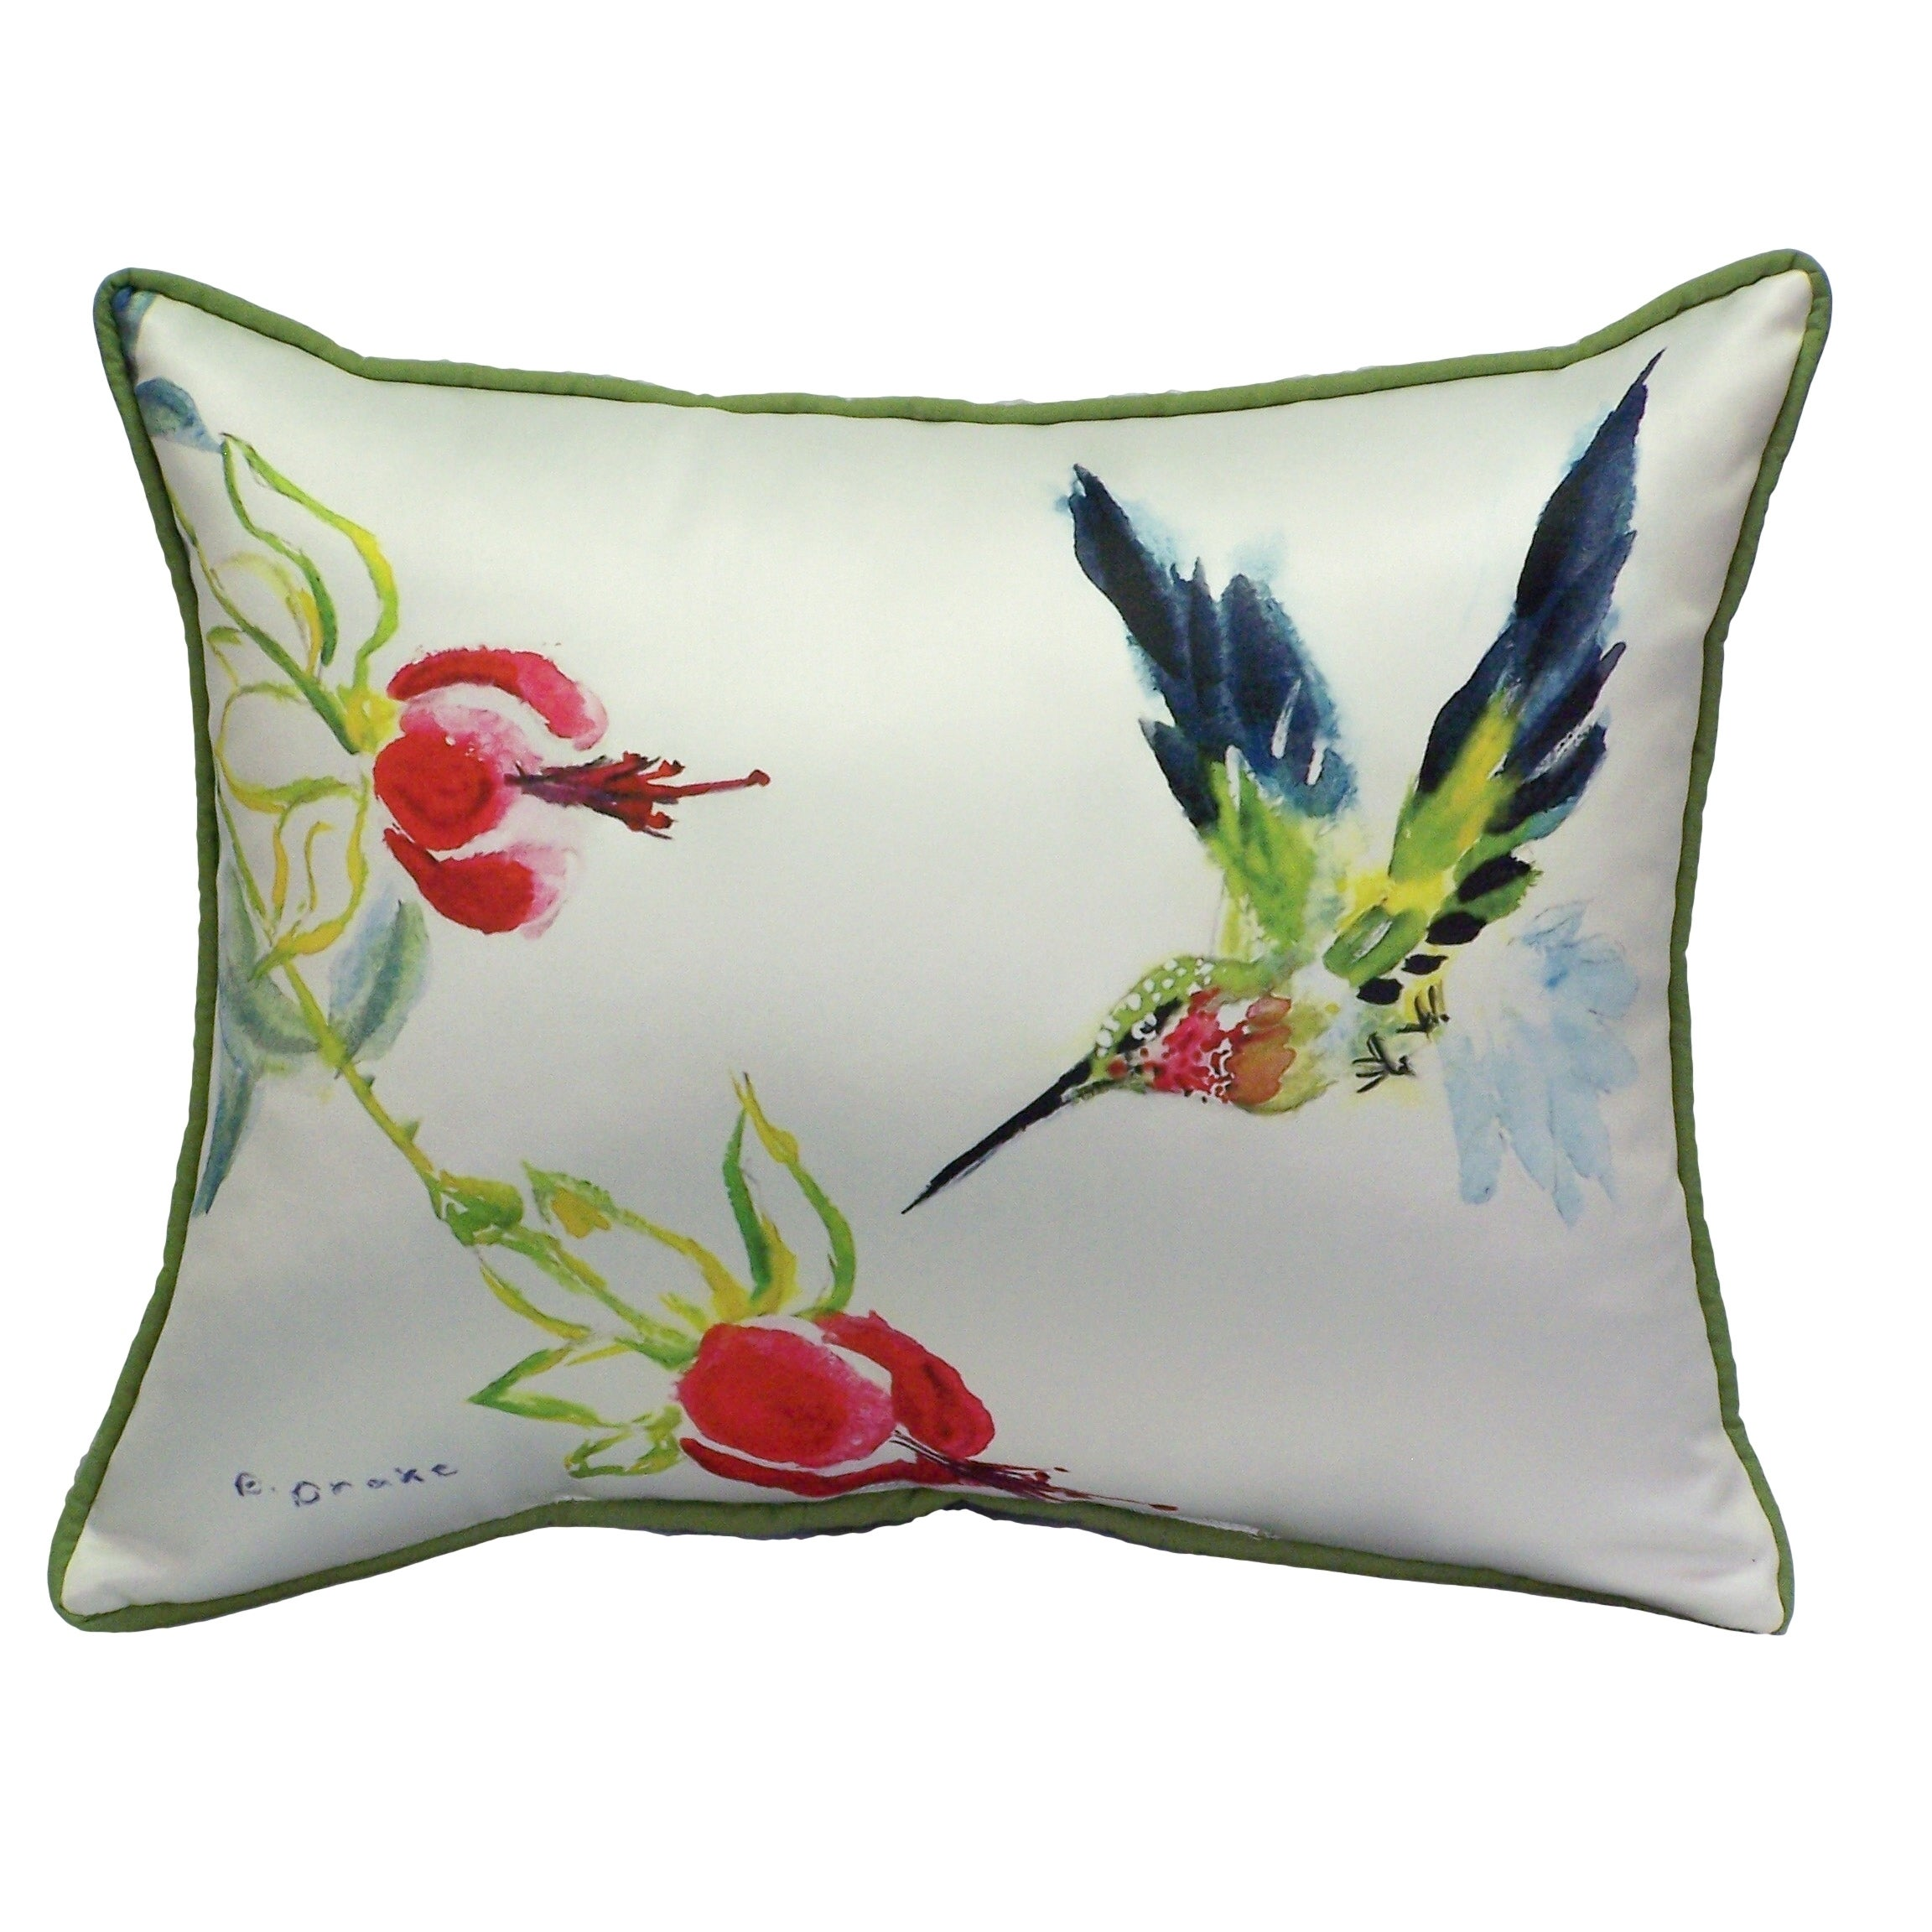 Betsy S Hummingbird 16x20 Inch Indoor Outdoor Pillow Overstock 9979754